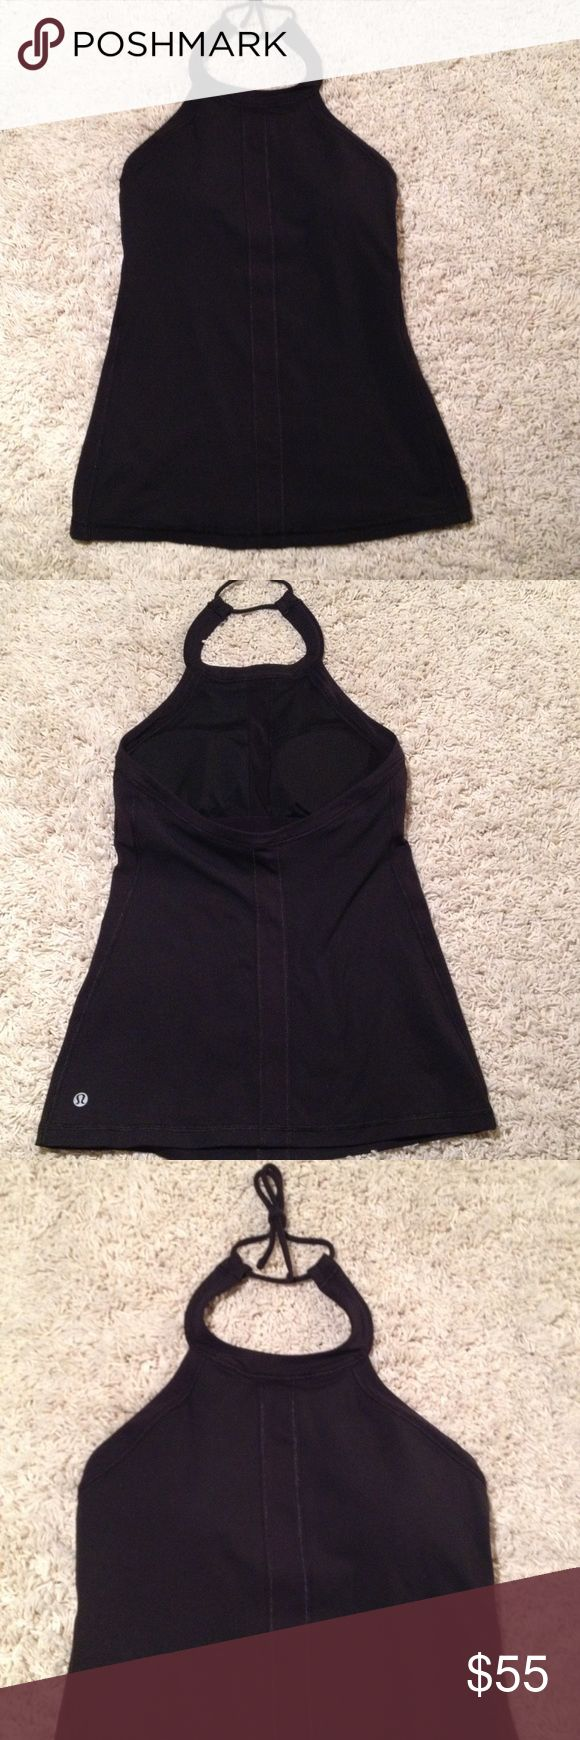 Halter workout top by Lululemon Cute workout top. No size tag so go by measurement. Chest is 26, length from neck in 20. Built in bra with removable pads. In like new condition. lululemon athletica Tops Tank Tops